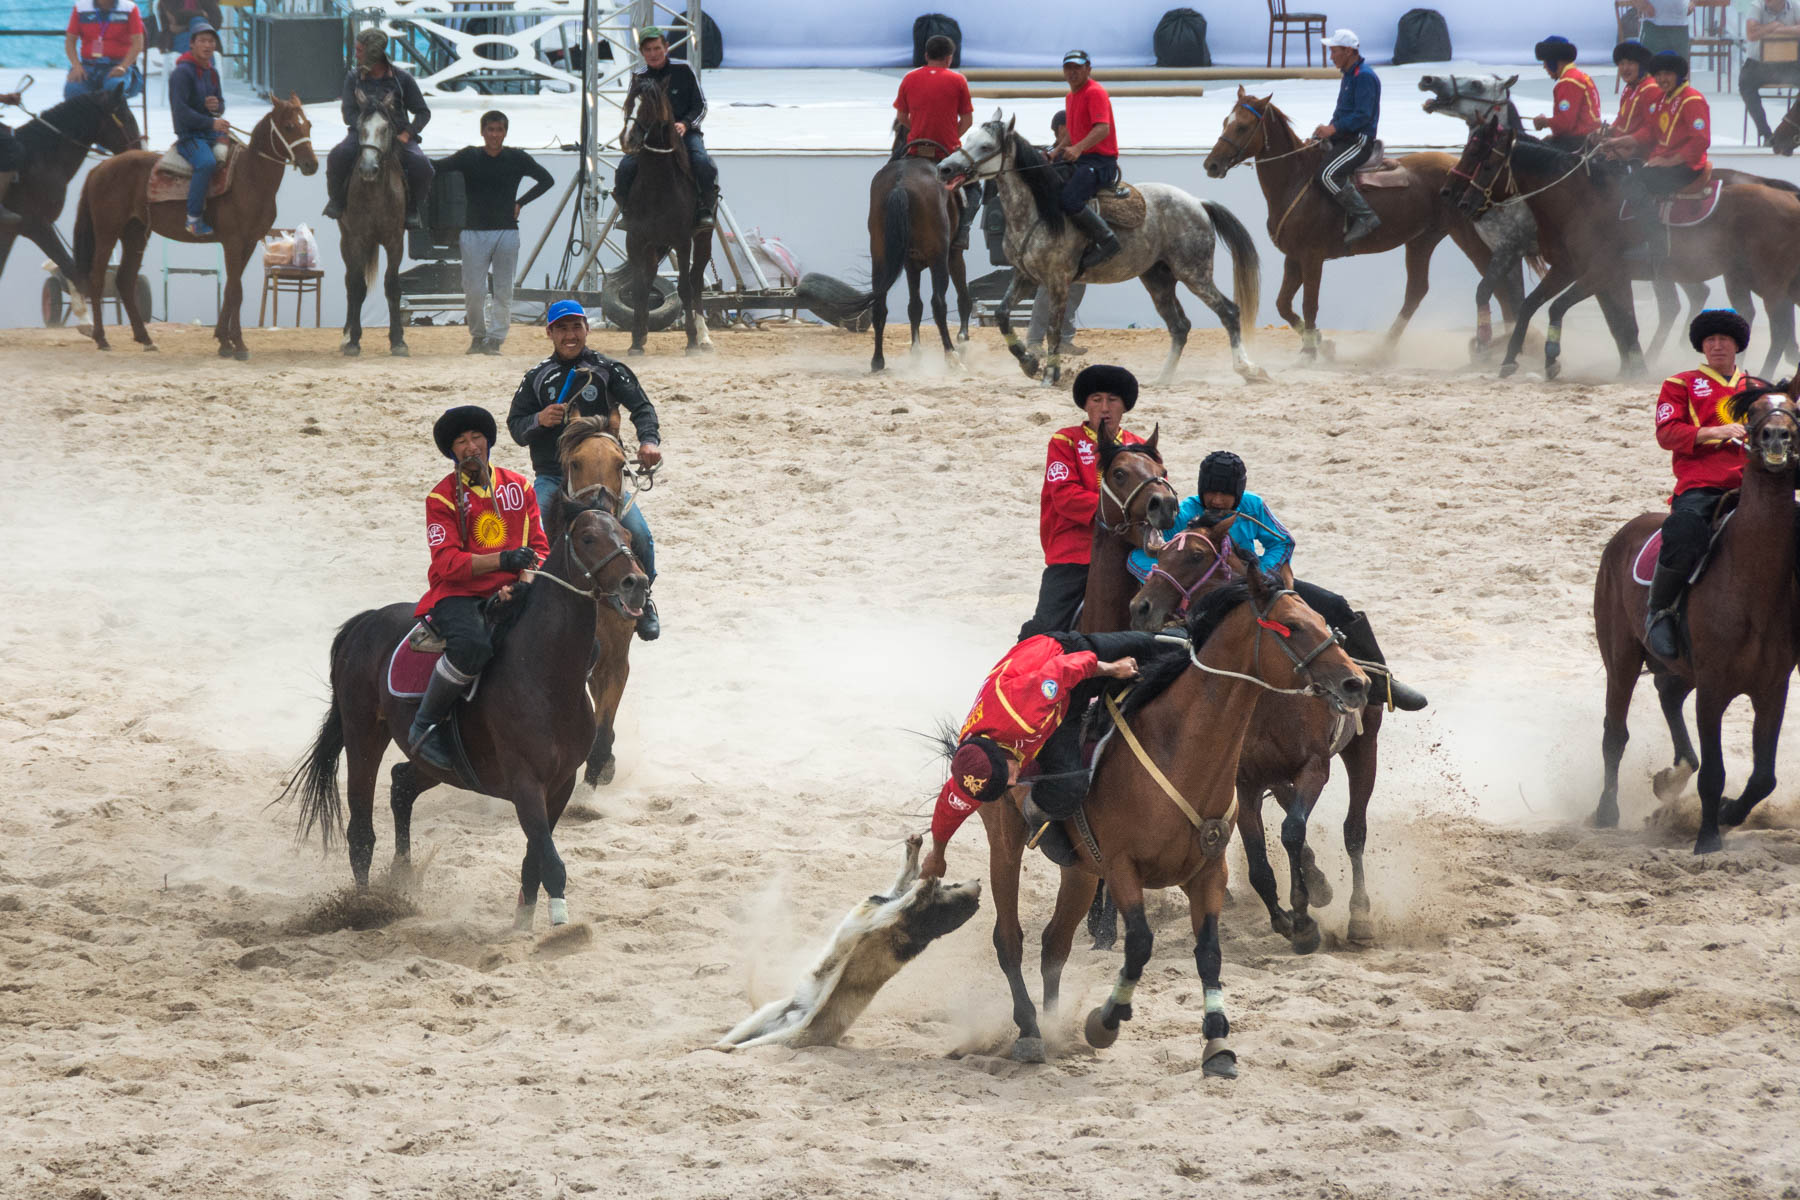 Camera advice for beginner travel photographers - Headless goat polo, AKA Kok Buru, at the World Nomad Games in Kyrgyzstan - Lost With Purpose travel blog